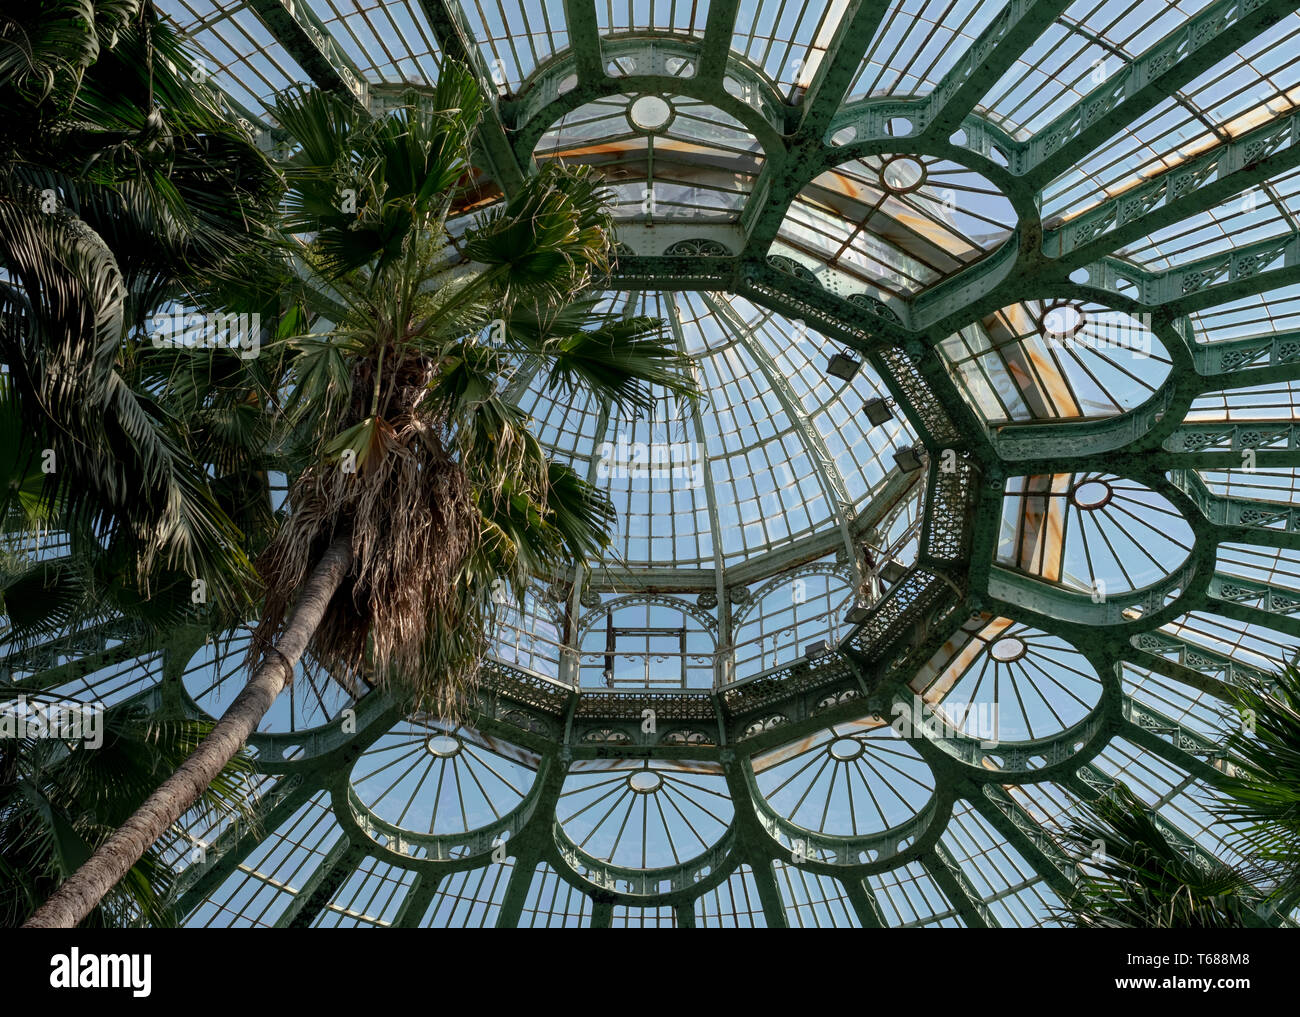 Domed roof of the Winter Garden, at the Royal Greenhouses at Laeken. The Winter Garden houses palms, ferns and exotic tropical plants - Stock Image